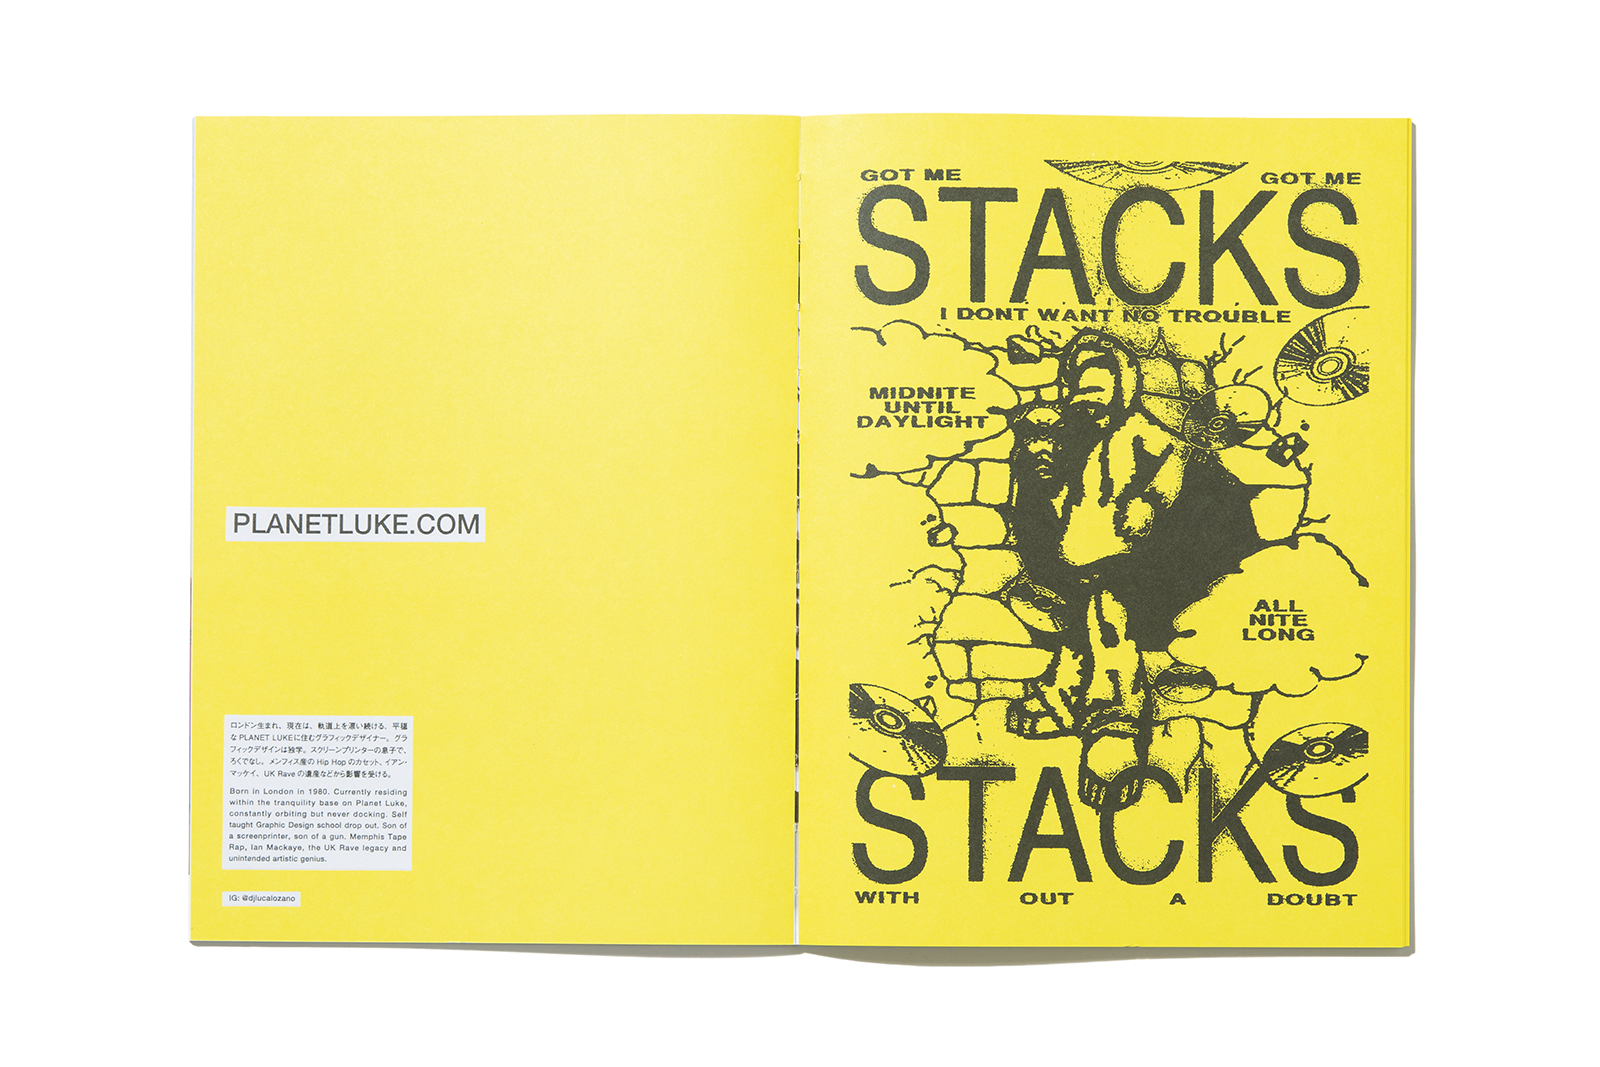 stacks-issue-3-2nd-edition_p1